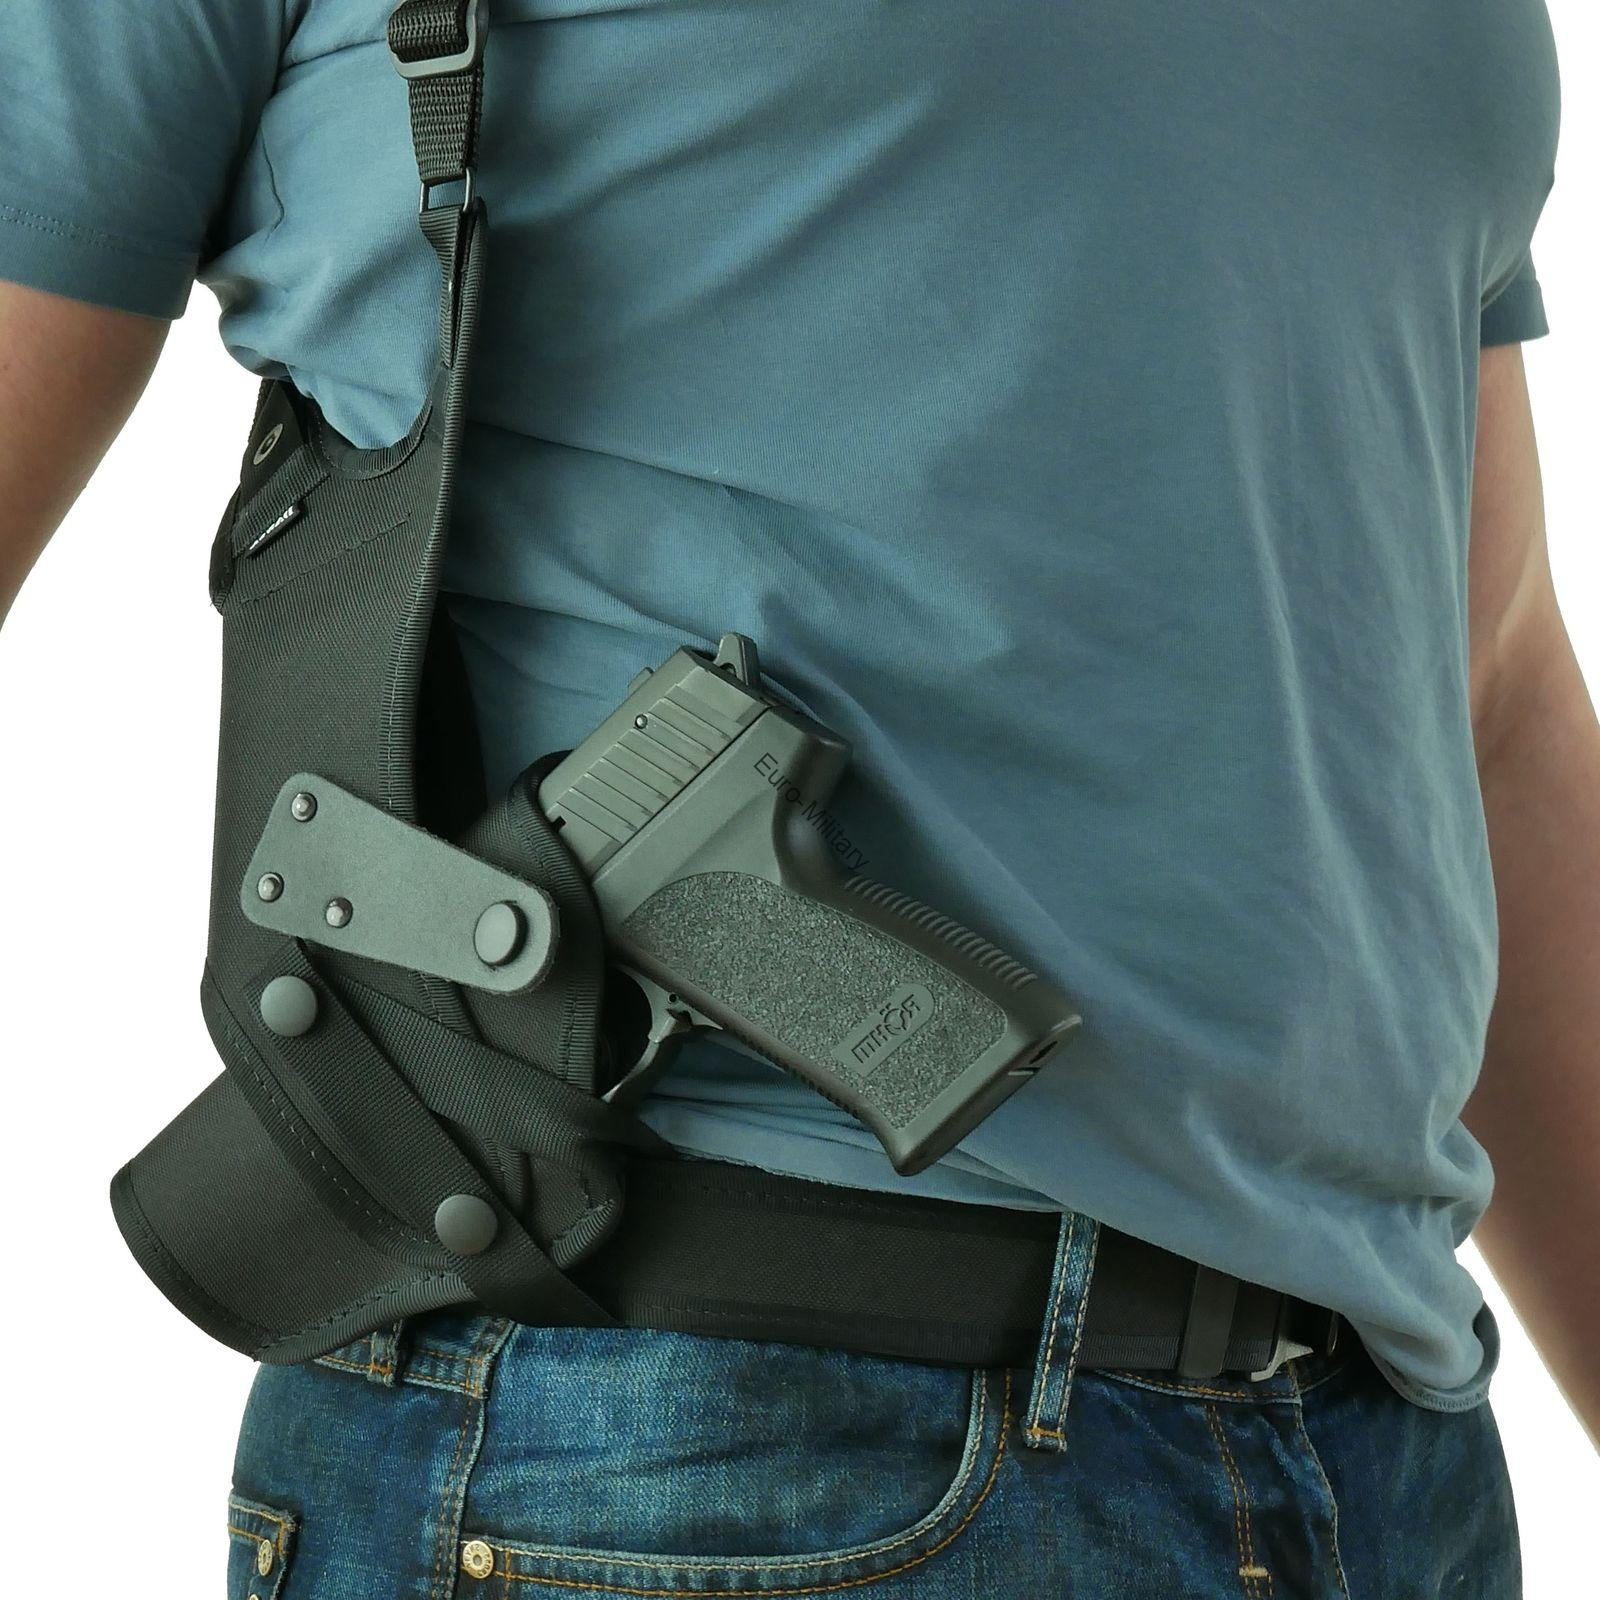 CZ Compact Size Thumb-Brake Shoulder Holster w/ One Shoulder Rig